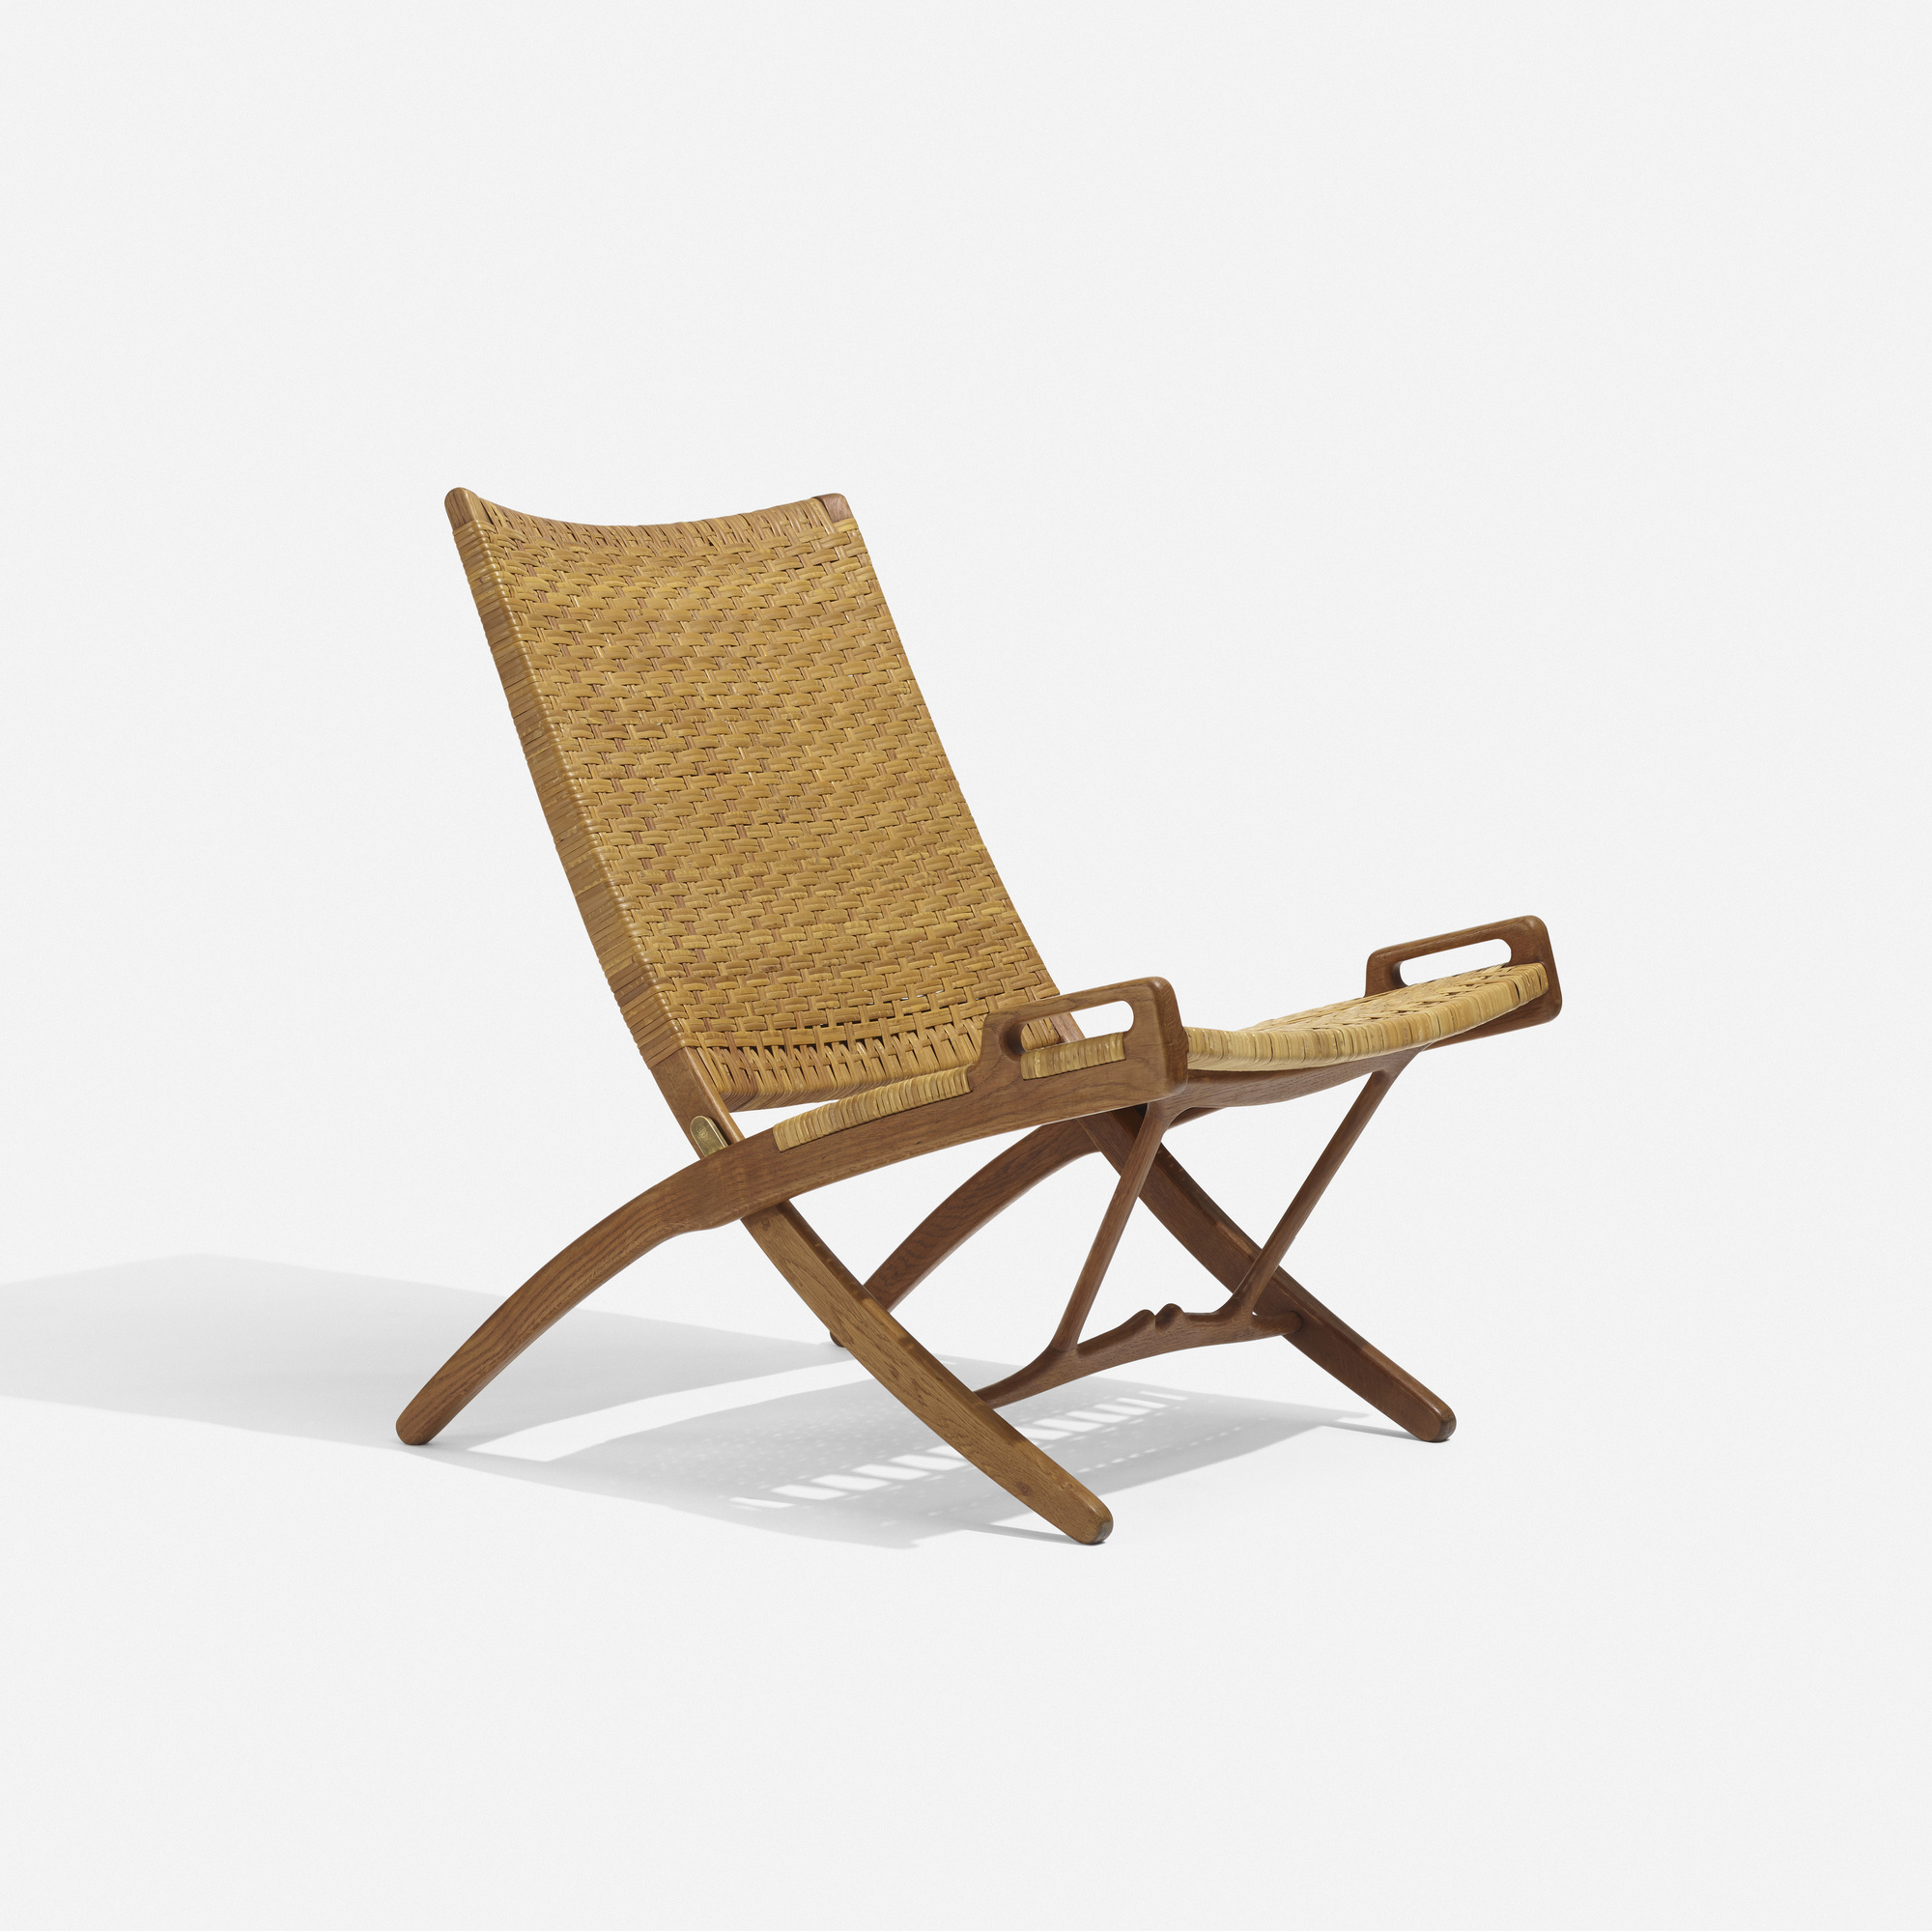 Hans Wegner Folding Chair 125 Hans J Wegner Folding Chair